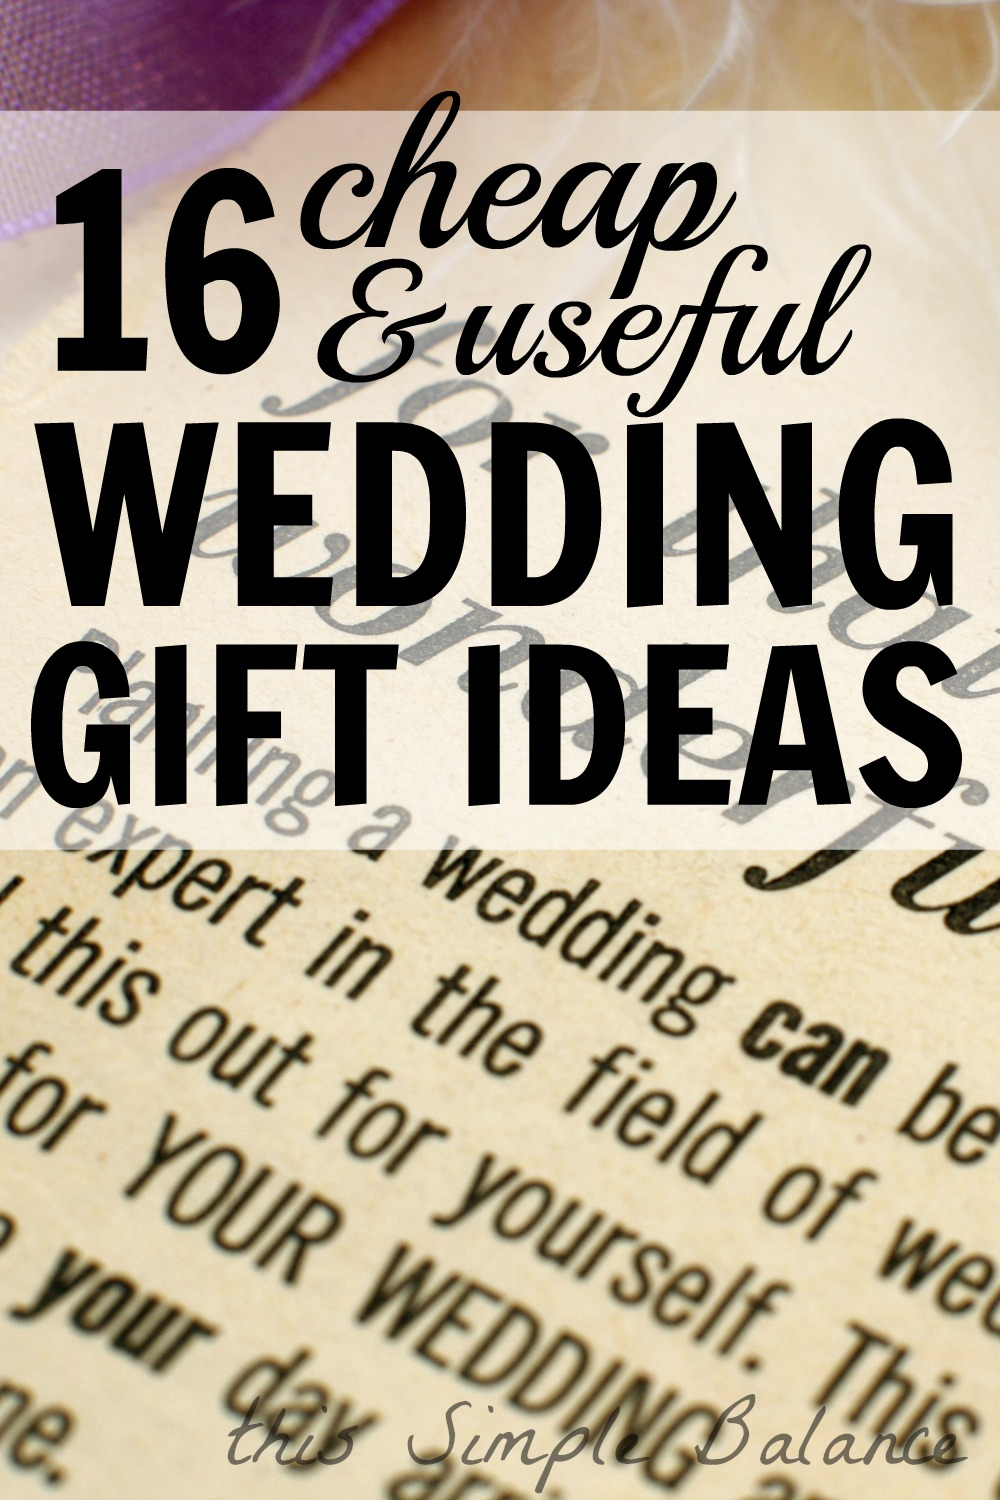 cheap useful wedding gifts, wedding gift ideas